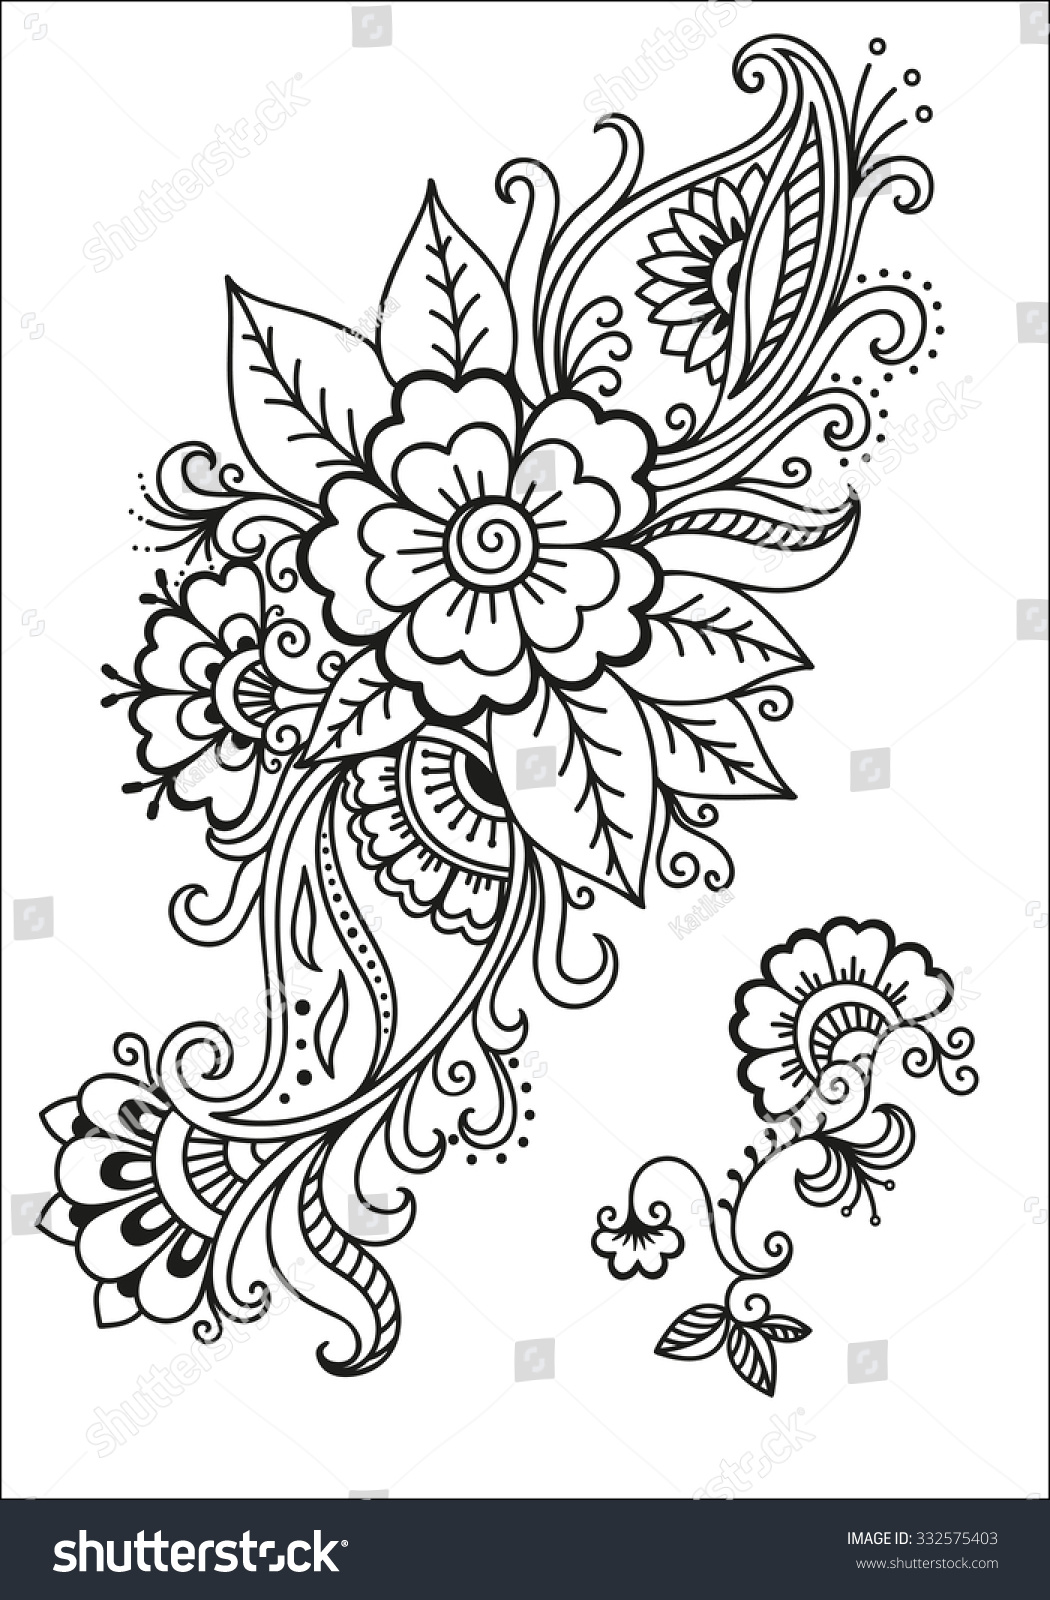 Henna Tattoo Flower Template In Indian Style: Henna Tattoo Flower Template.Mehndi. Stock Vector